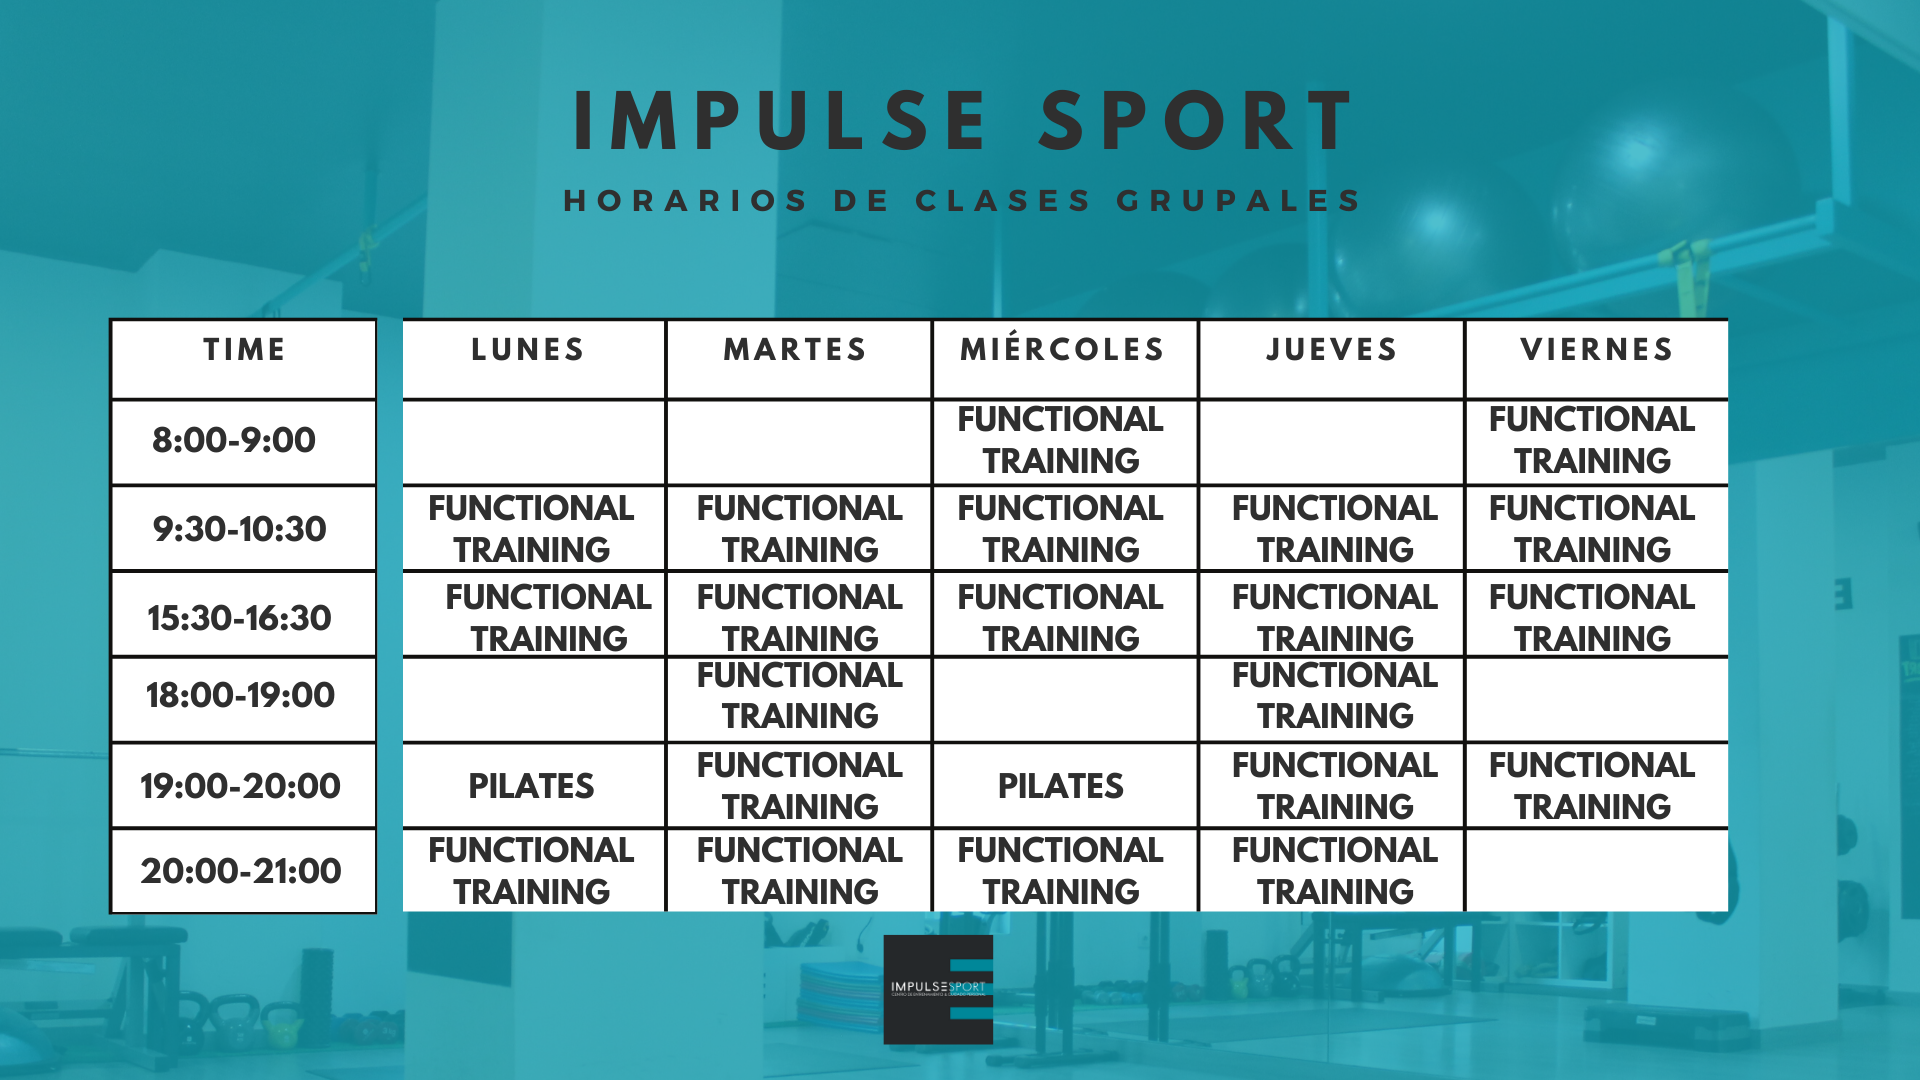 HORARIO GRUPALES IMPULSE